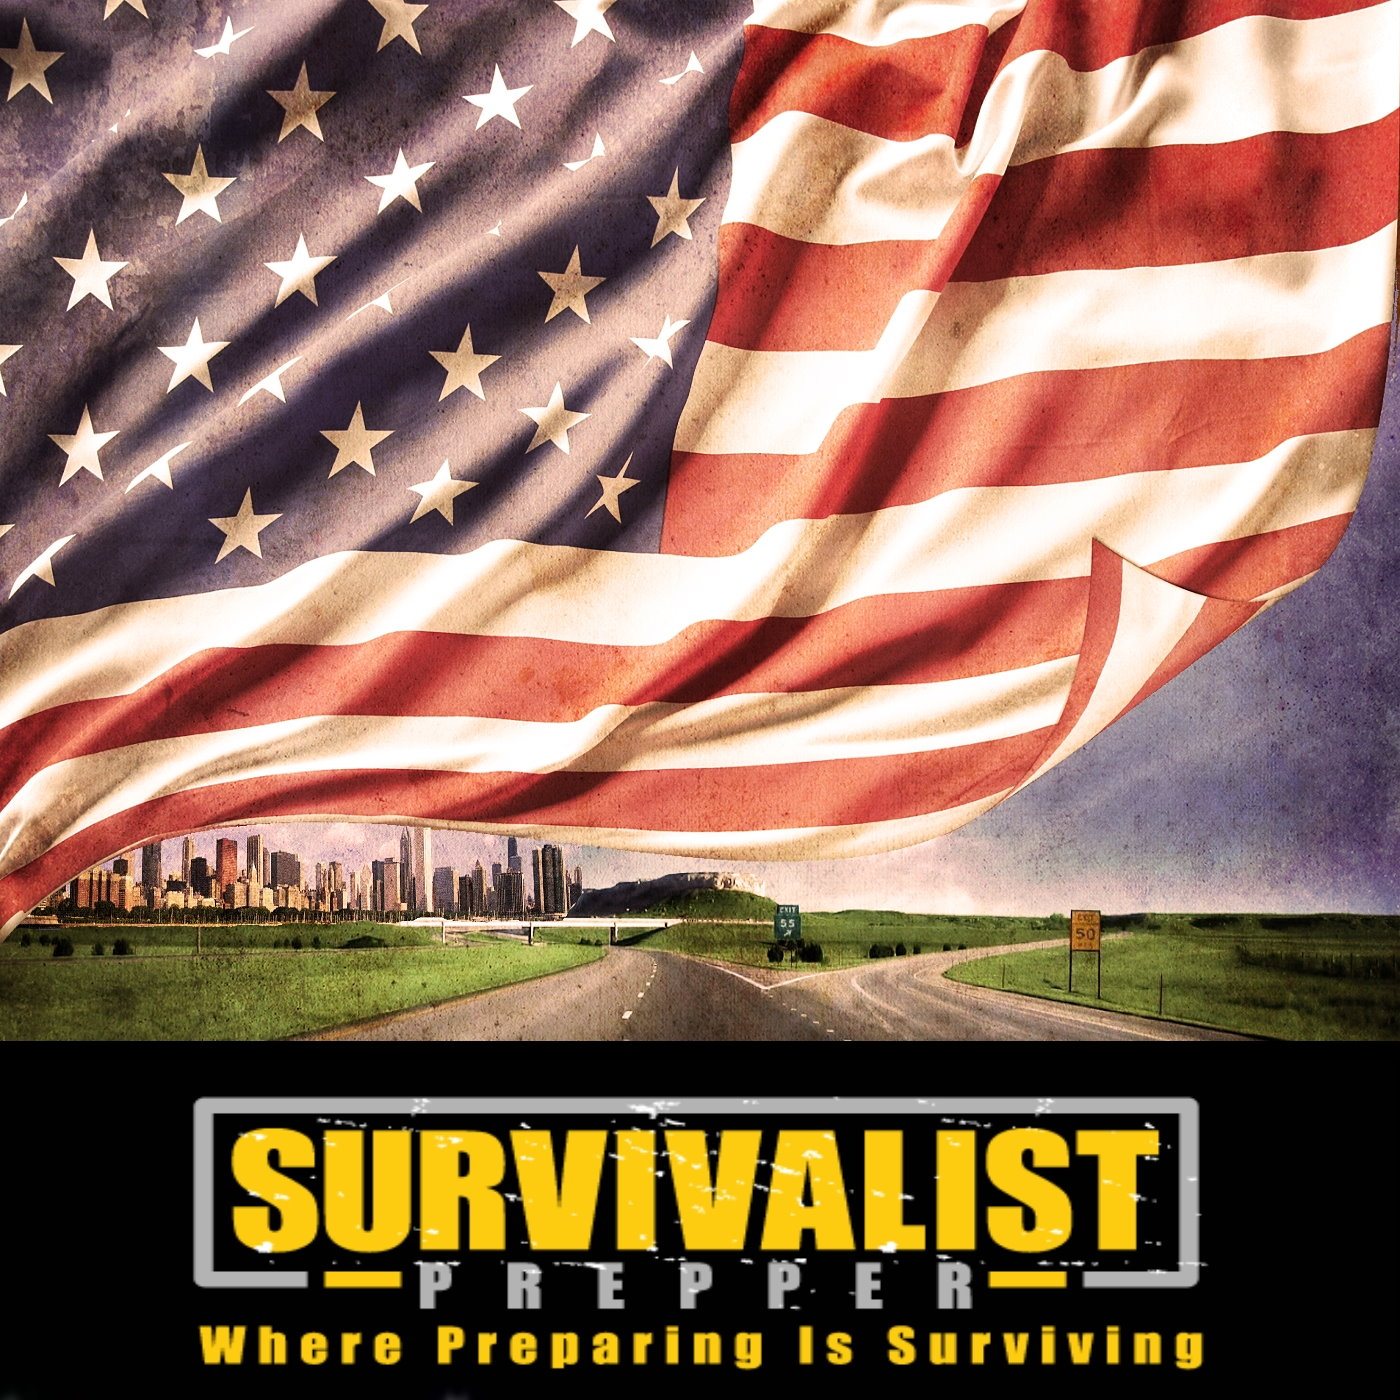 The Survivalist Prepper Podcast